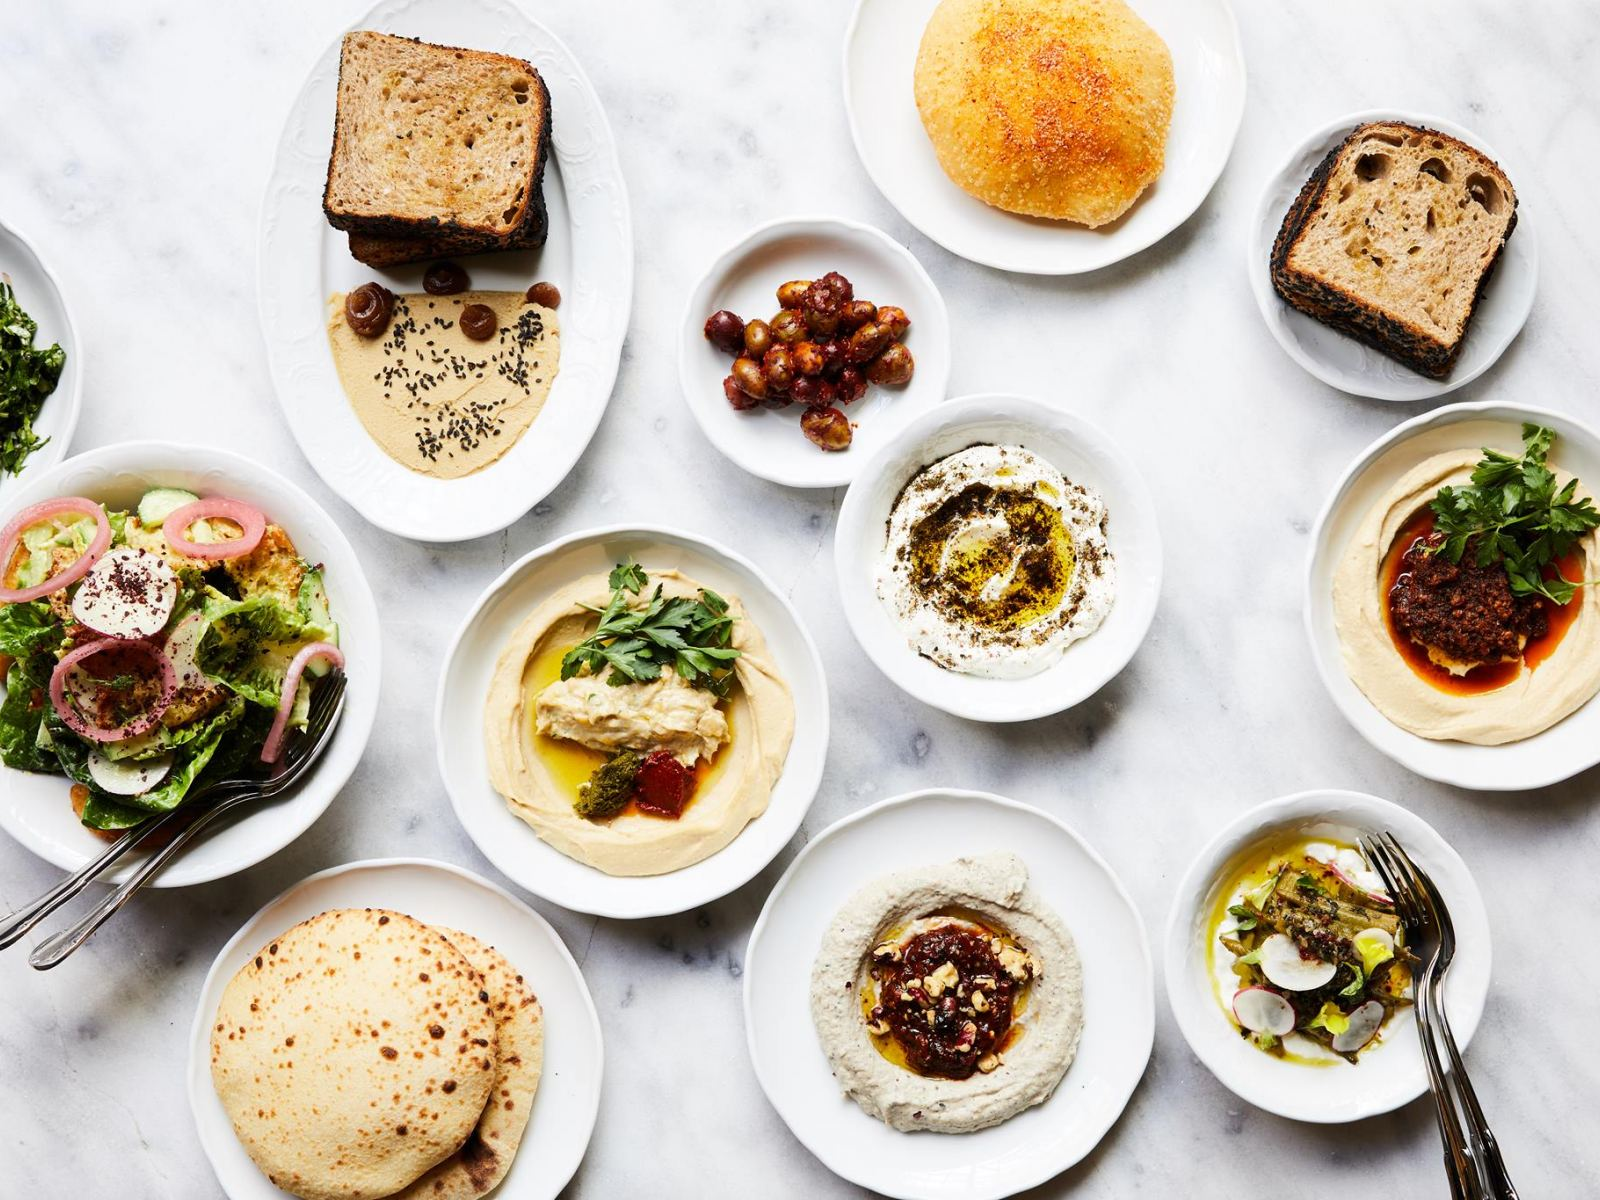 Discover The New Wave Of Modern Middle Eastern Restaurants In Los